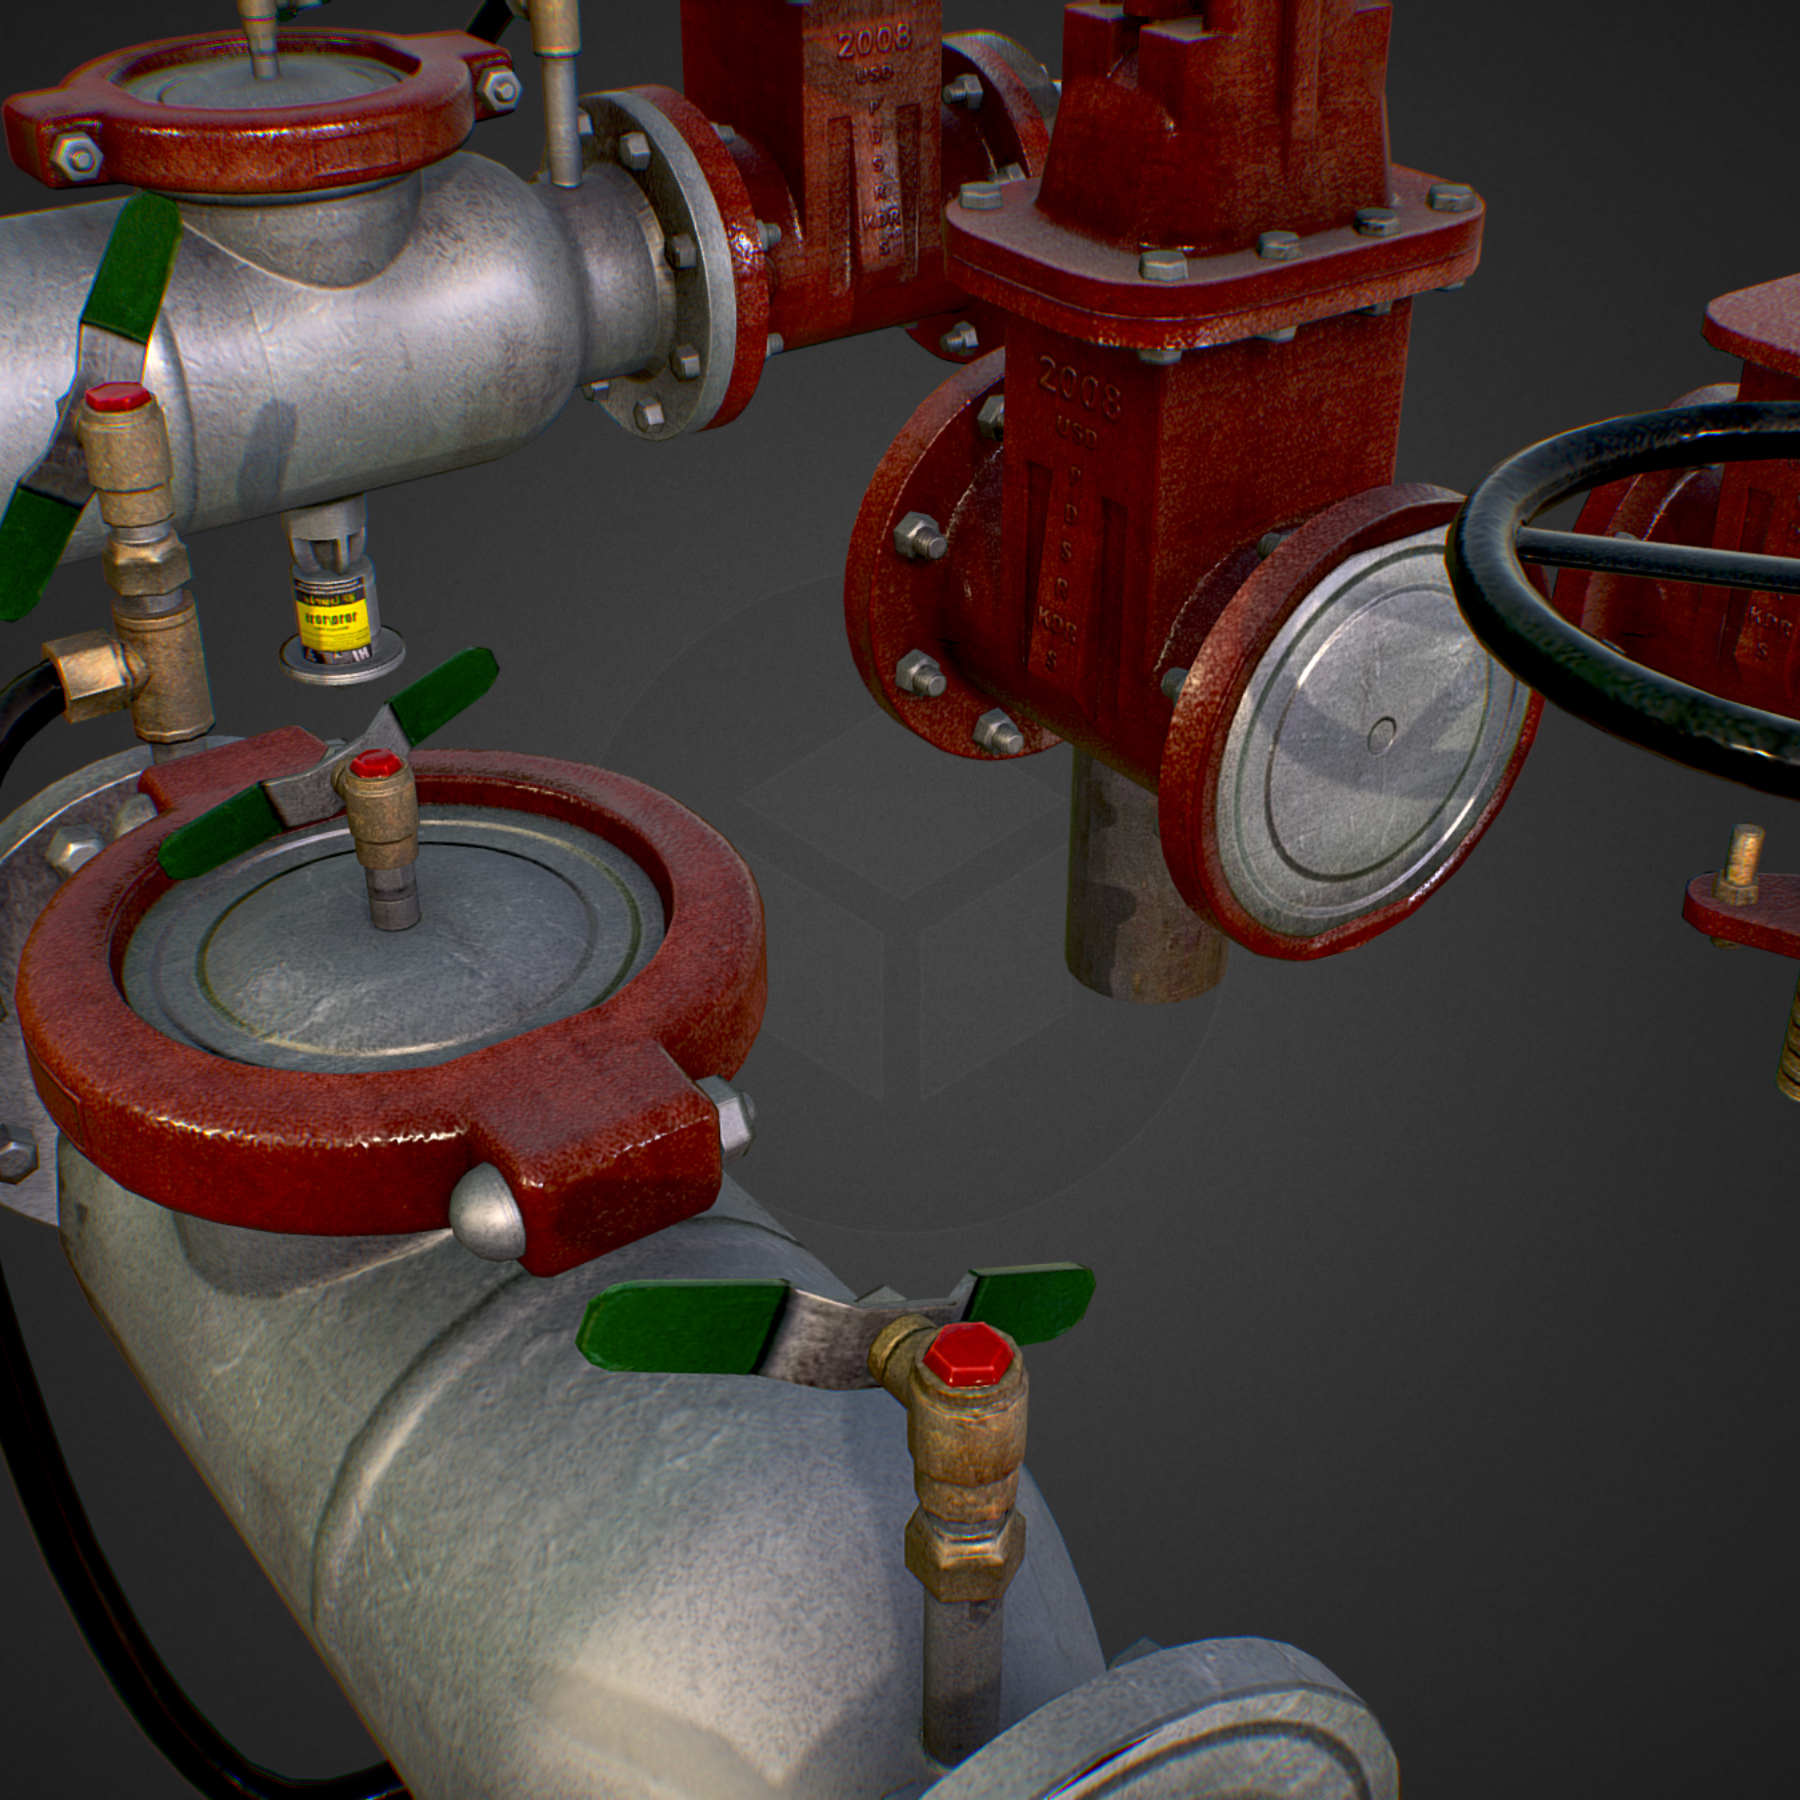 low poly game backflow water pipe constructor 3d model max  fbx ma mb tga targa icb vda vst pix obj 272473